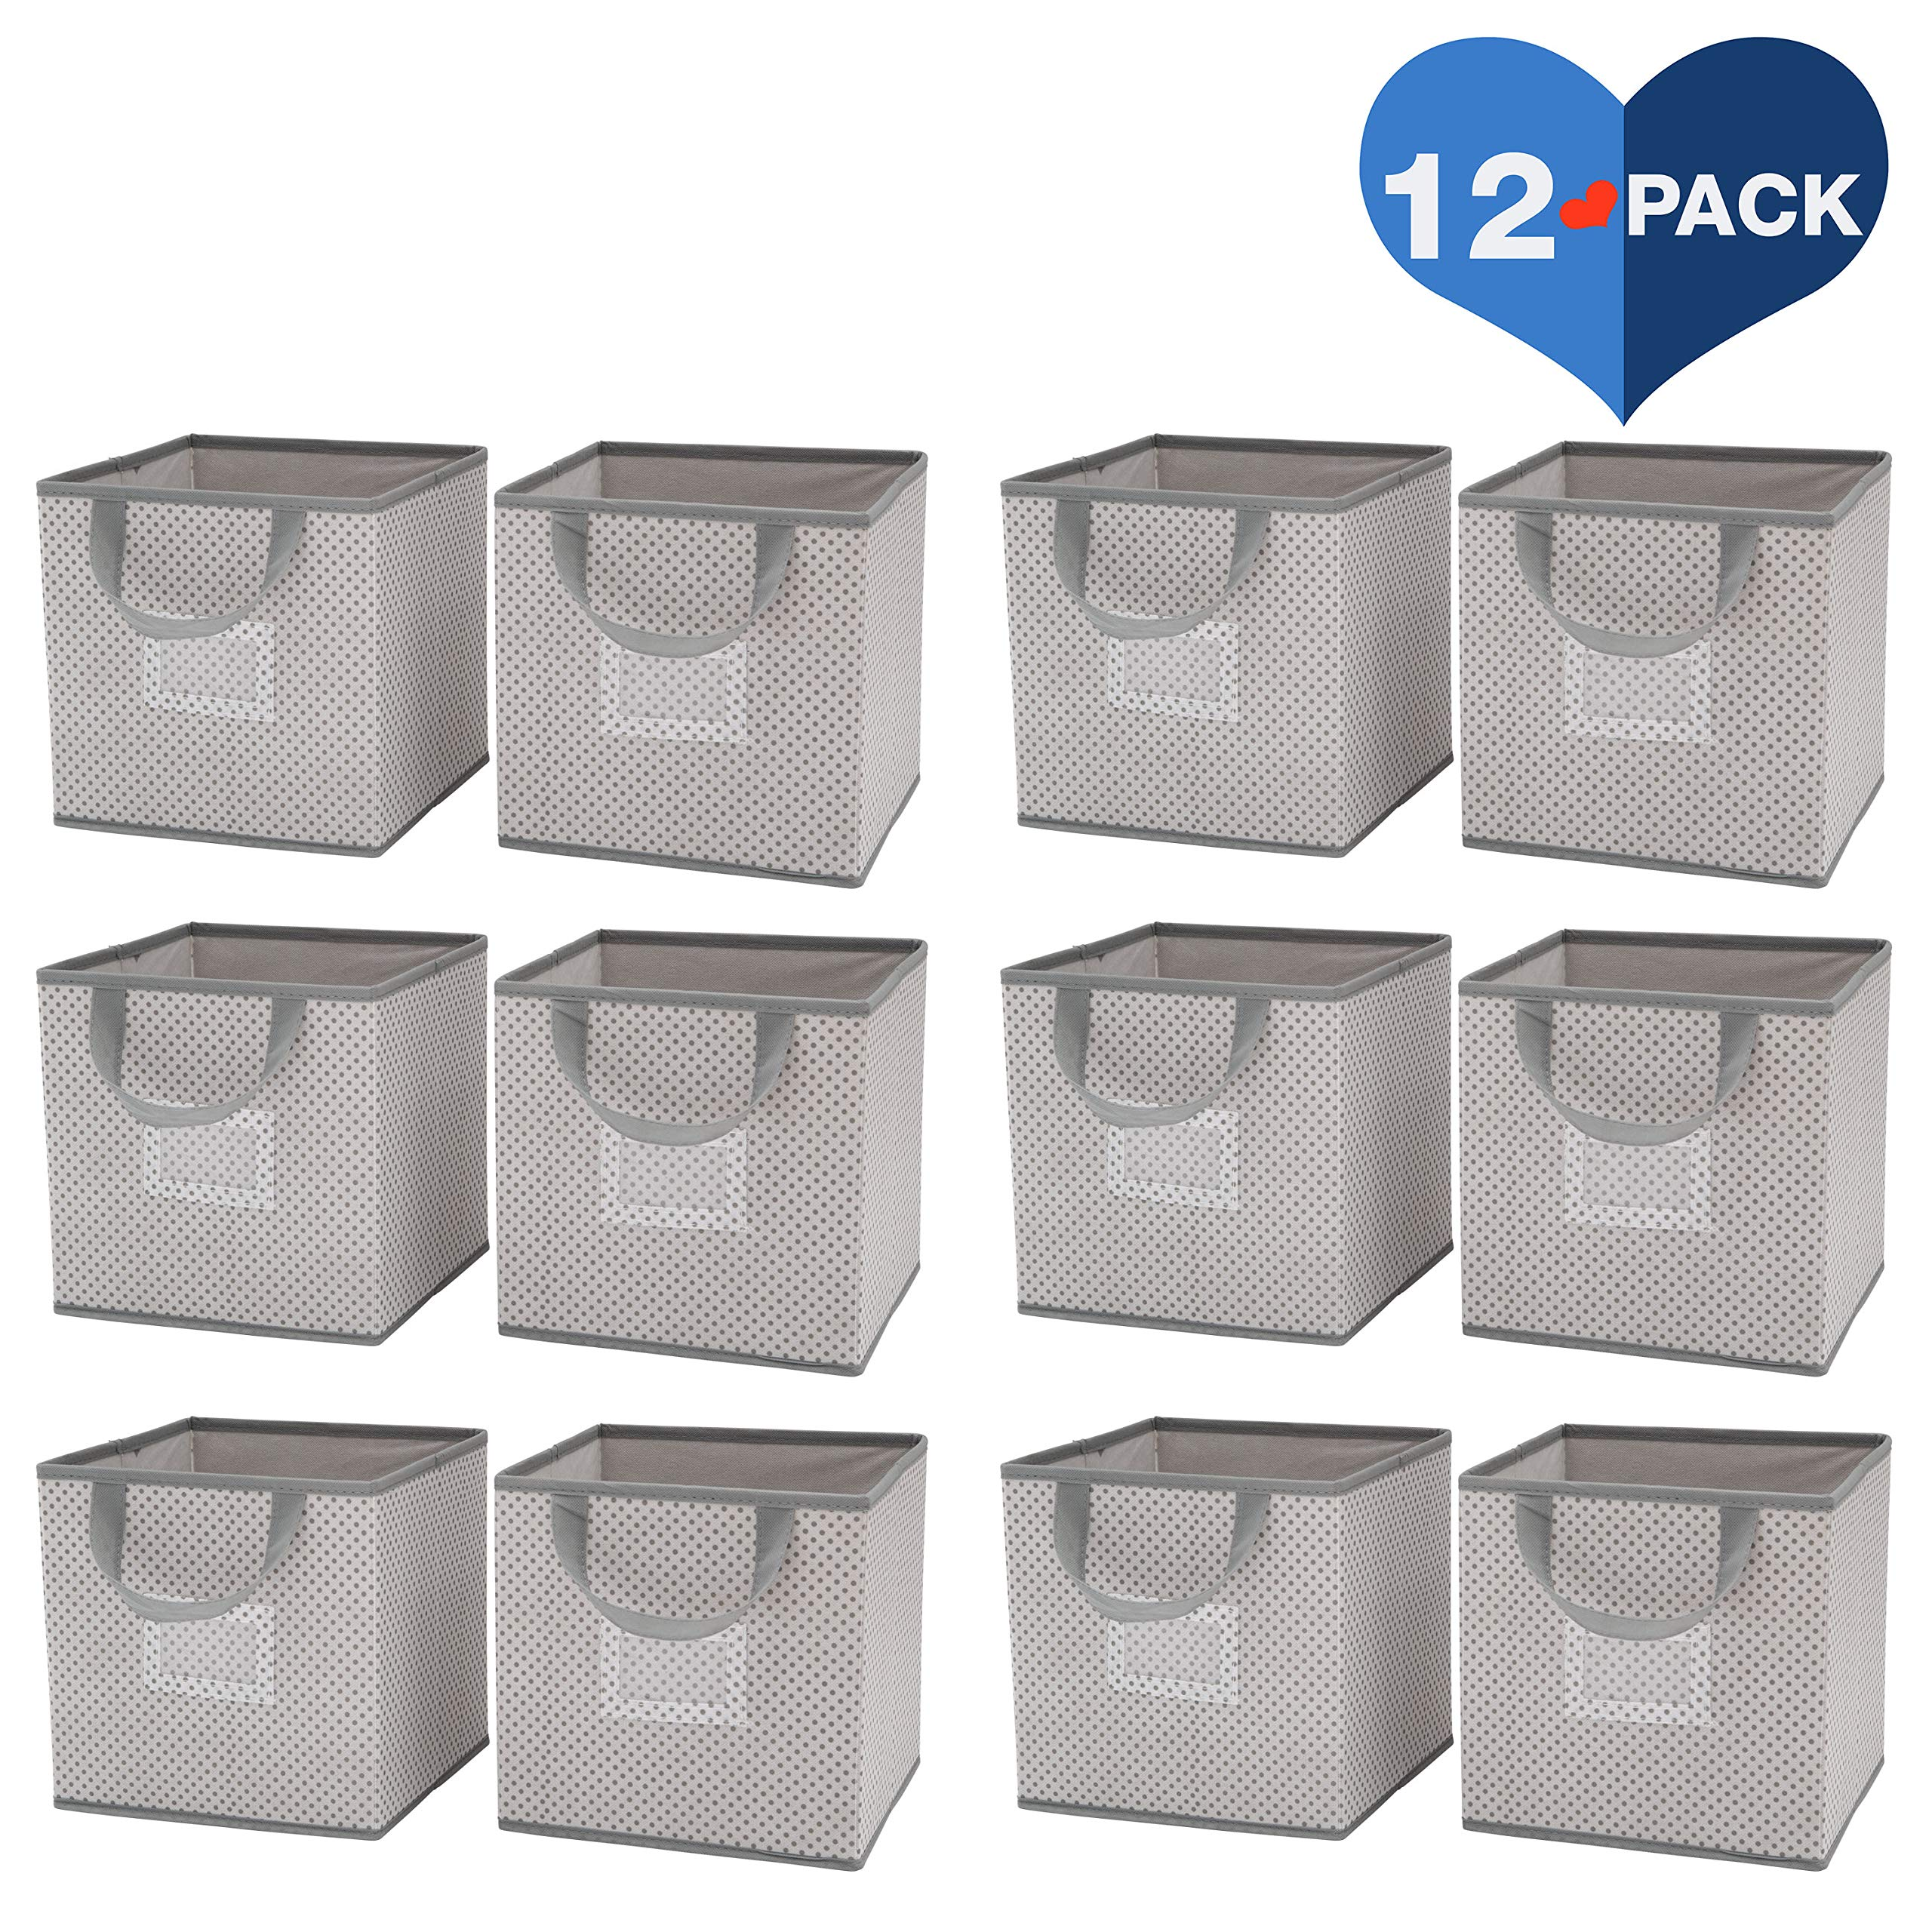 Delta Children 12 Piece Foldable Storage Cubes/Bins, Cool Grey by Delta Children